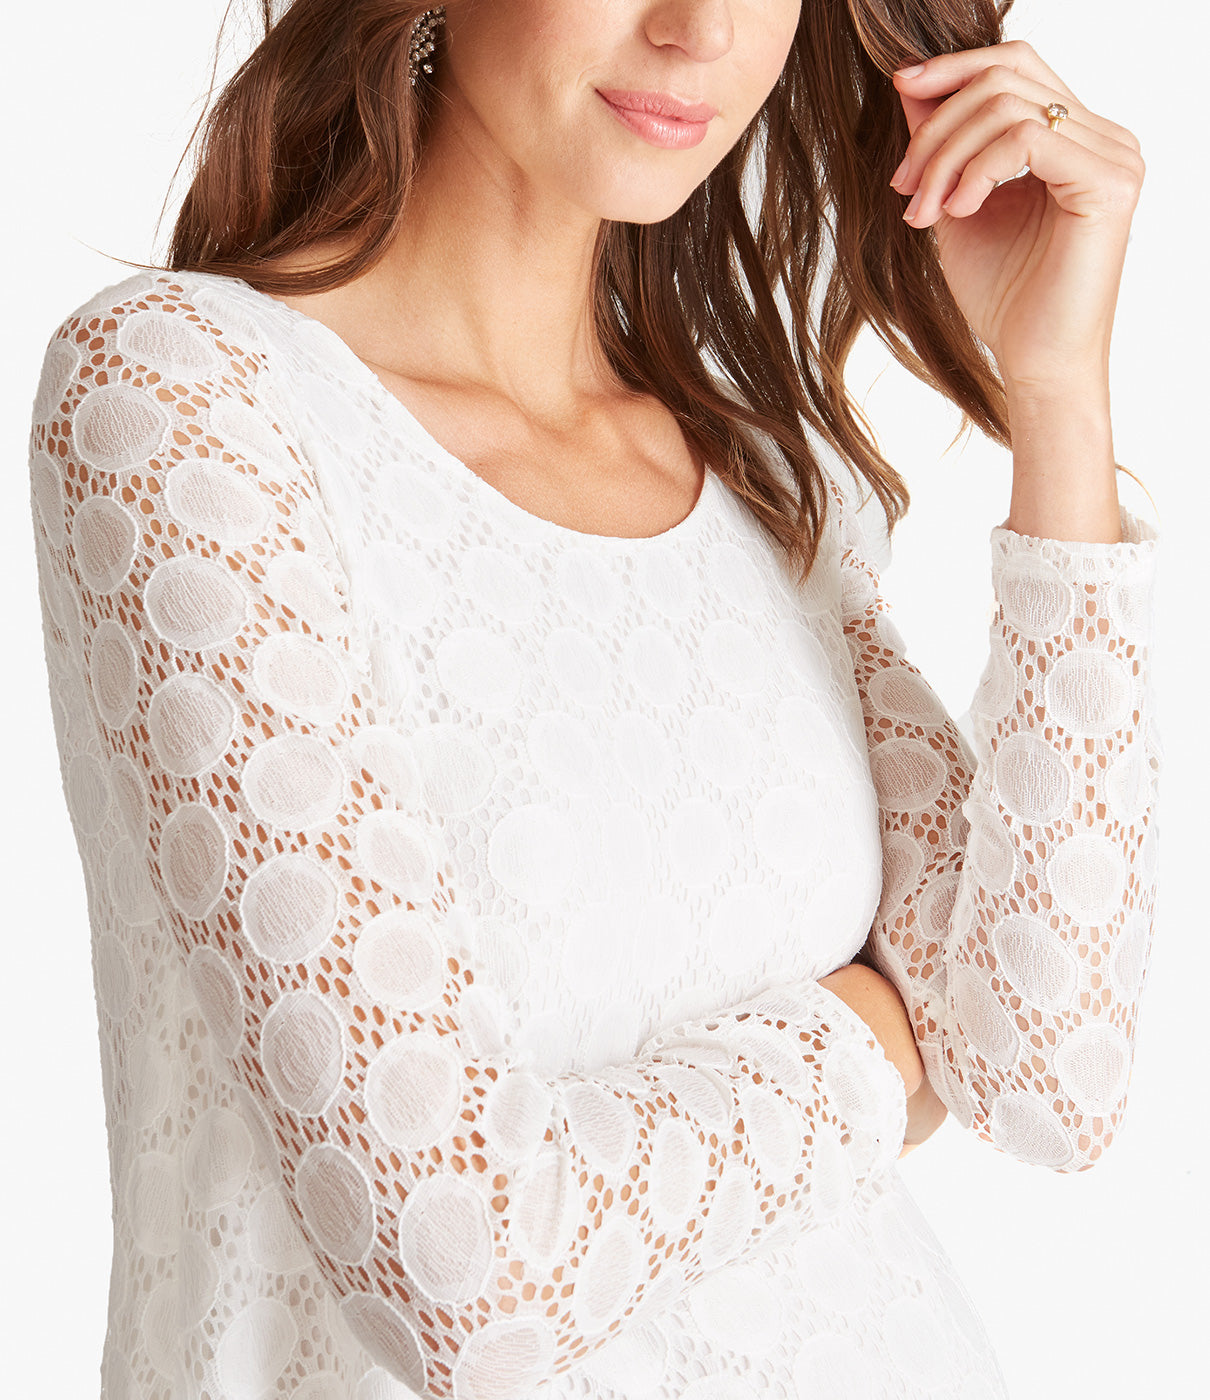 In the DetailsLong sleeves are unlined so you can see the lace and skin detail.